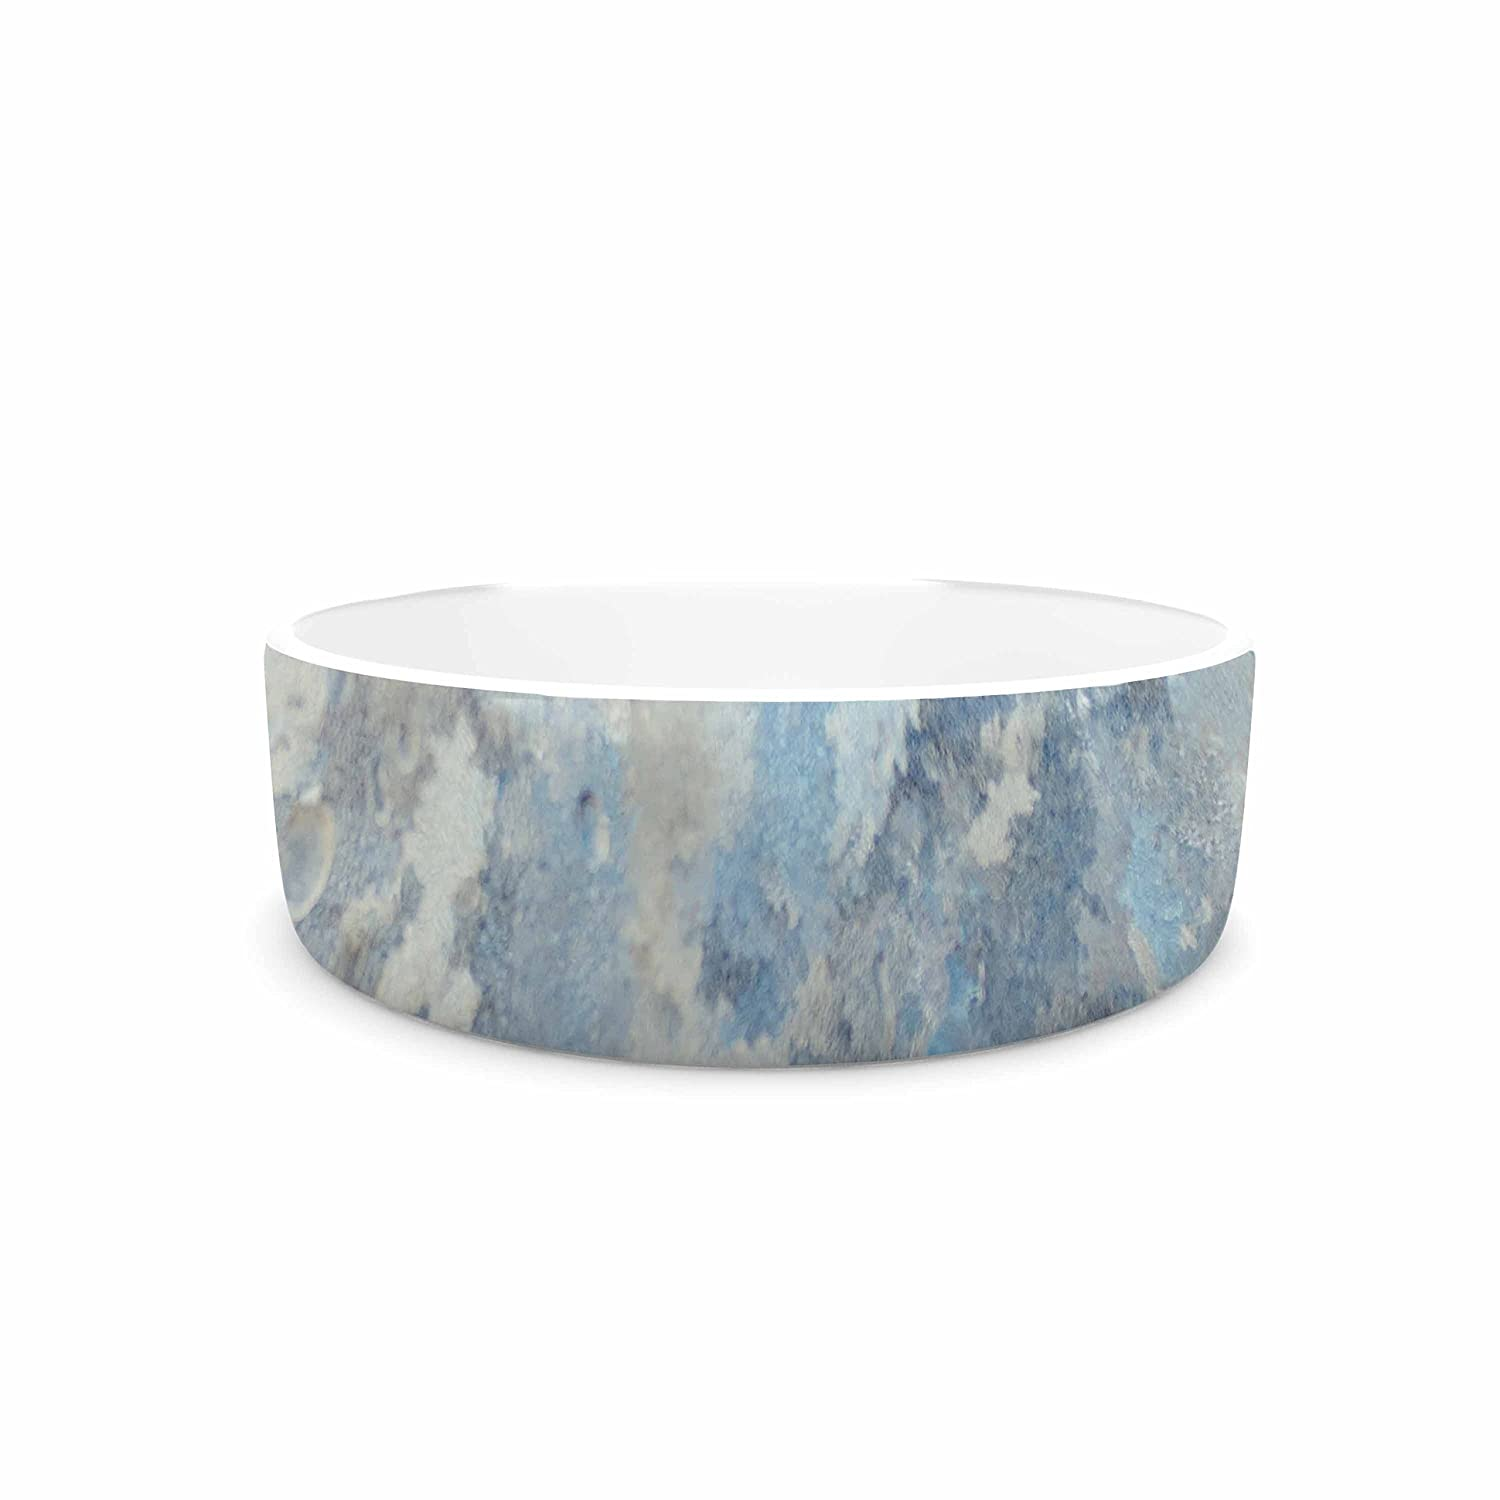 KESS InHouse Chelsea Victoria Frosted Marble bluee White Photography Pet Bowl, 4.75  Diameter